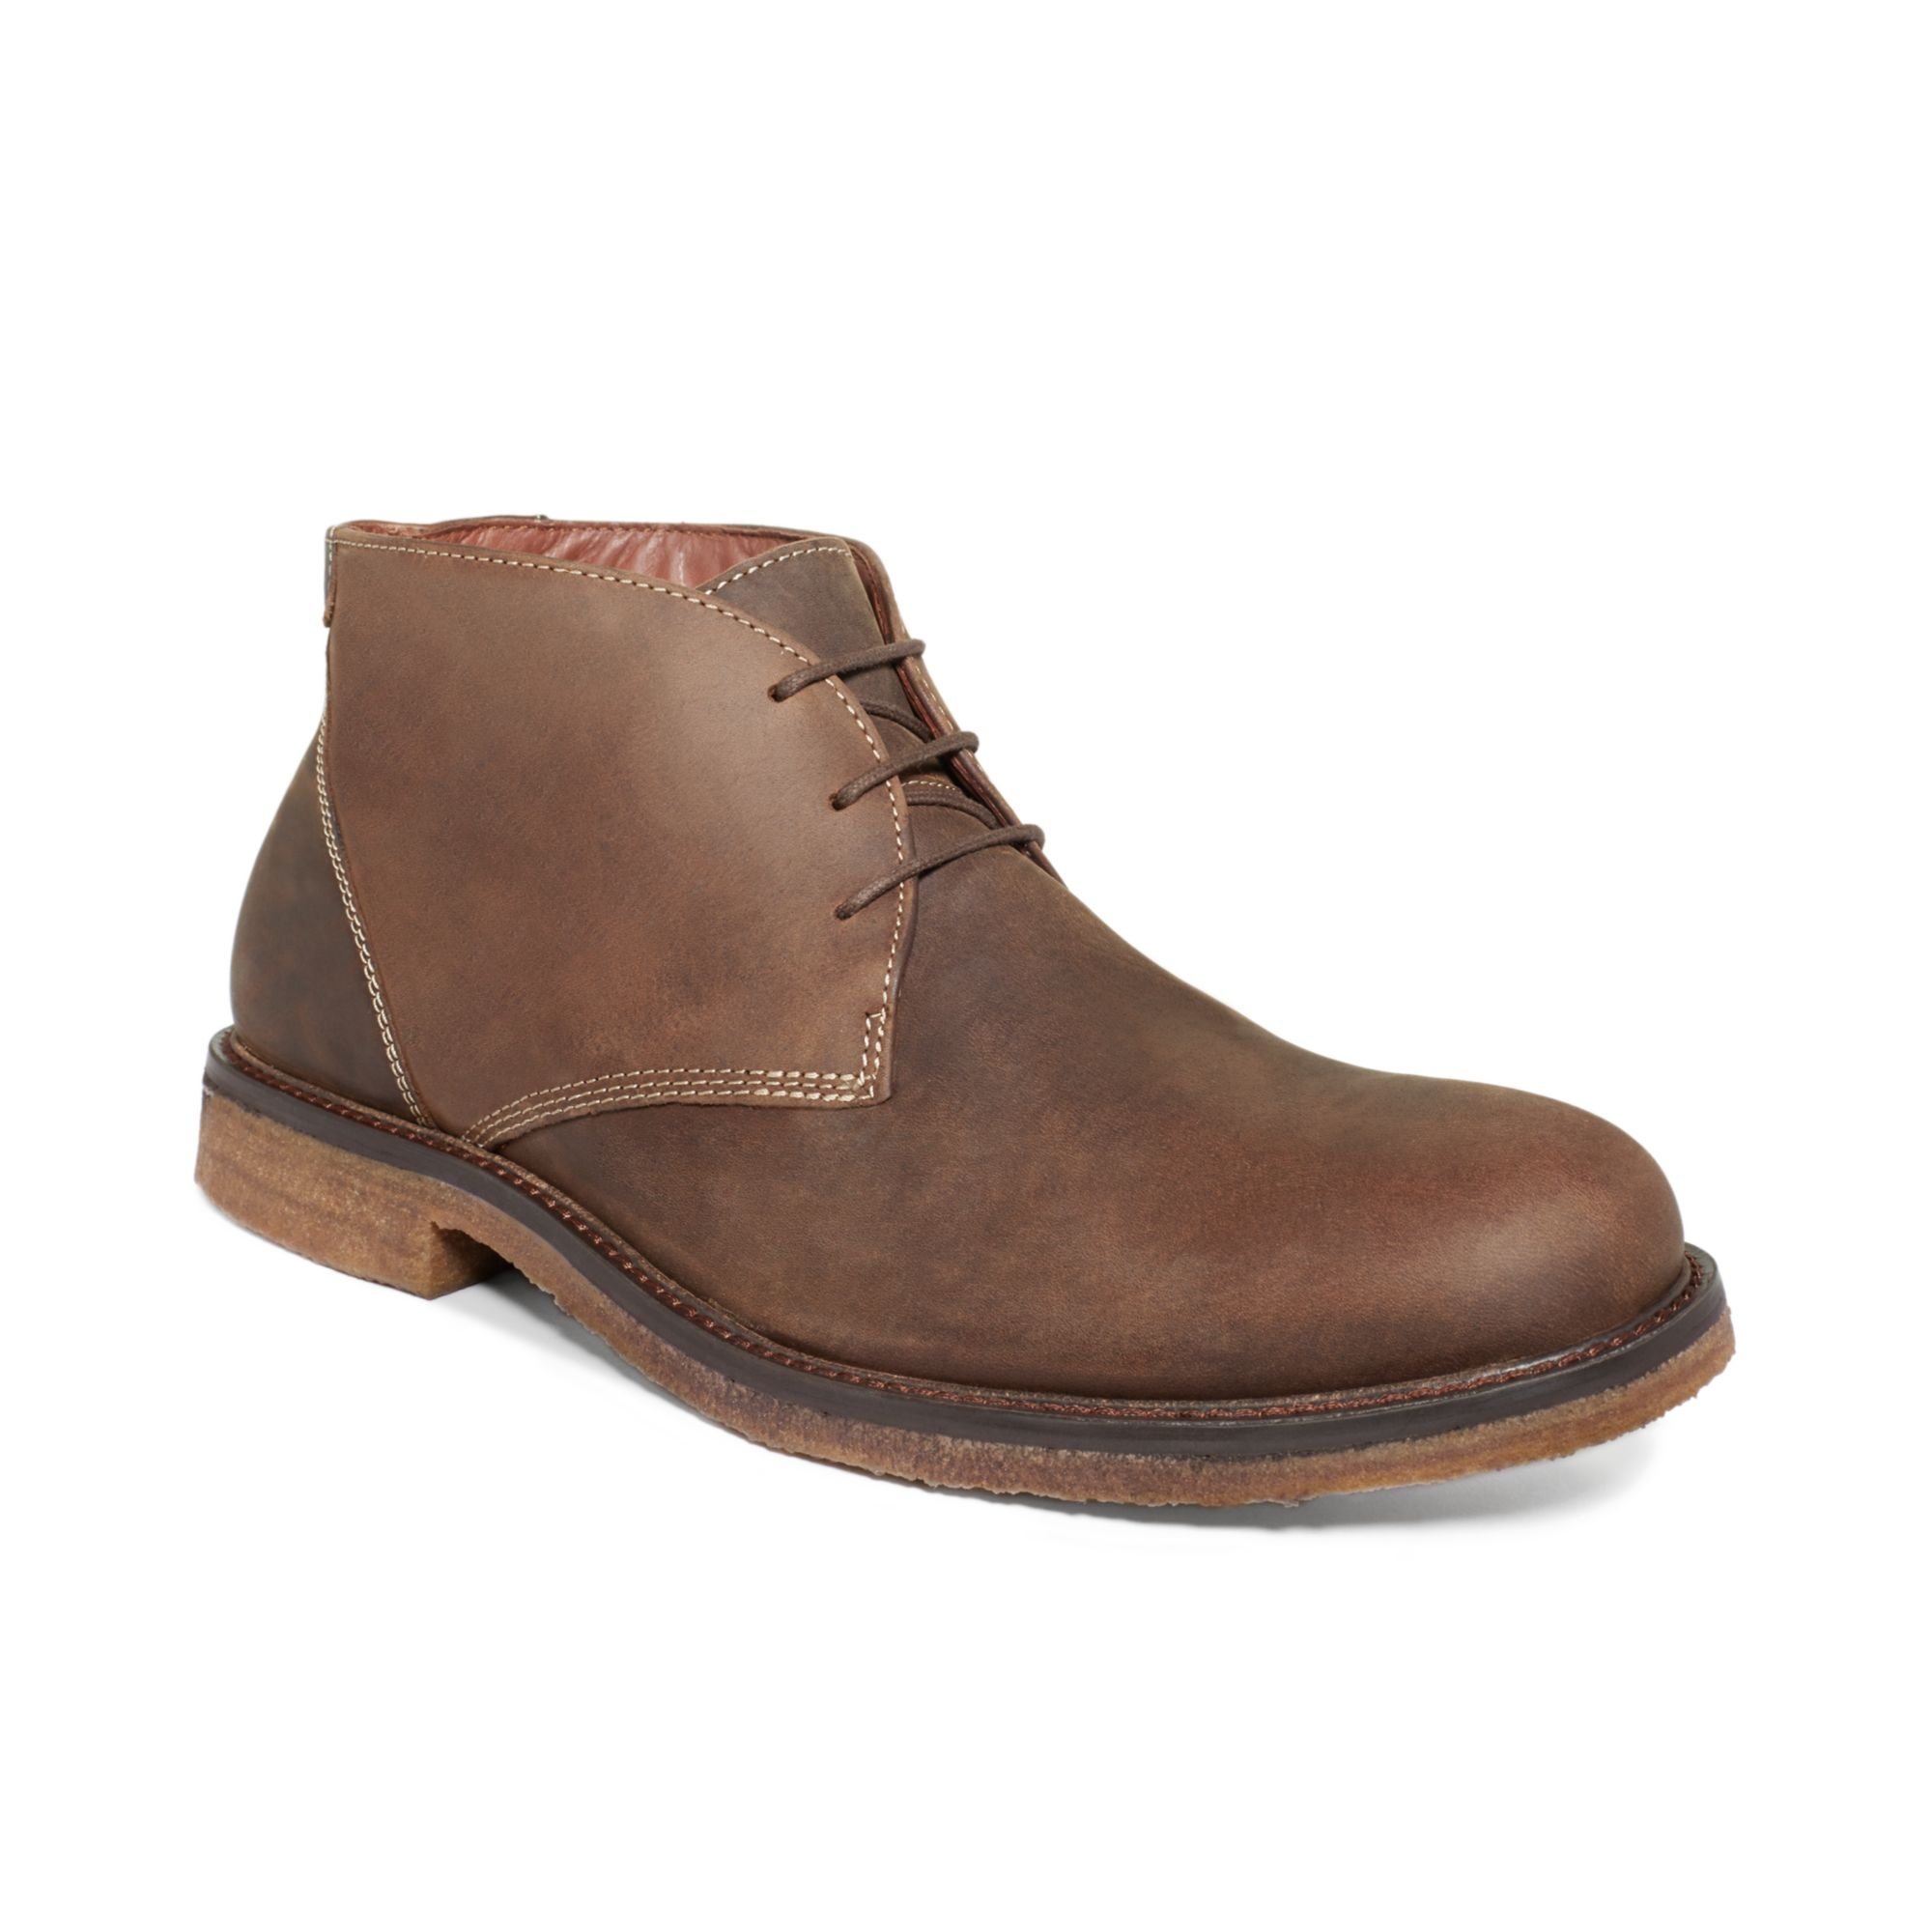 boots by johnston and murphy mens dress sandals